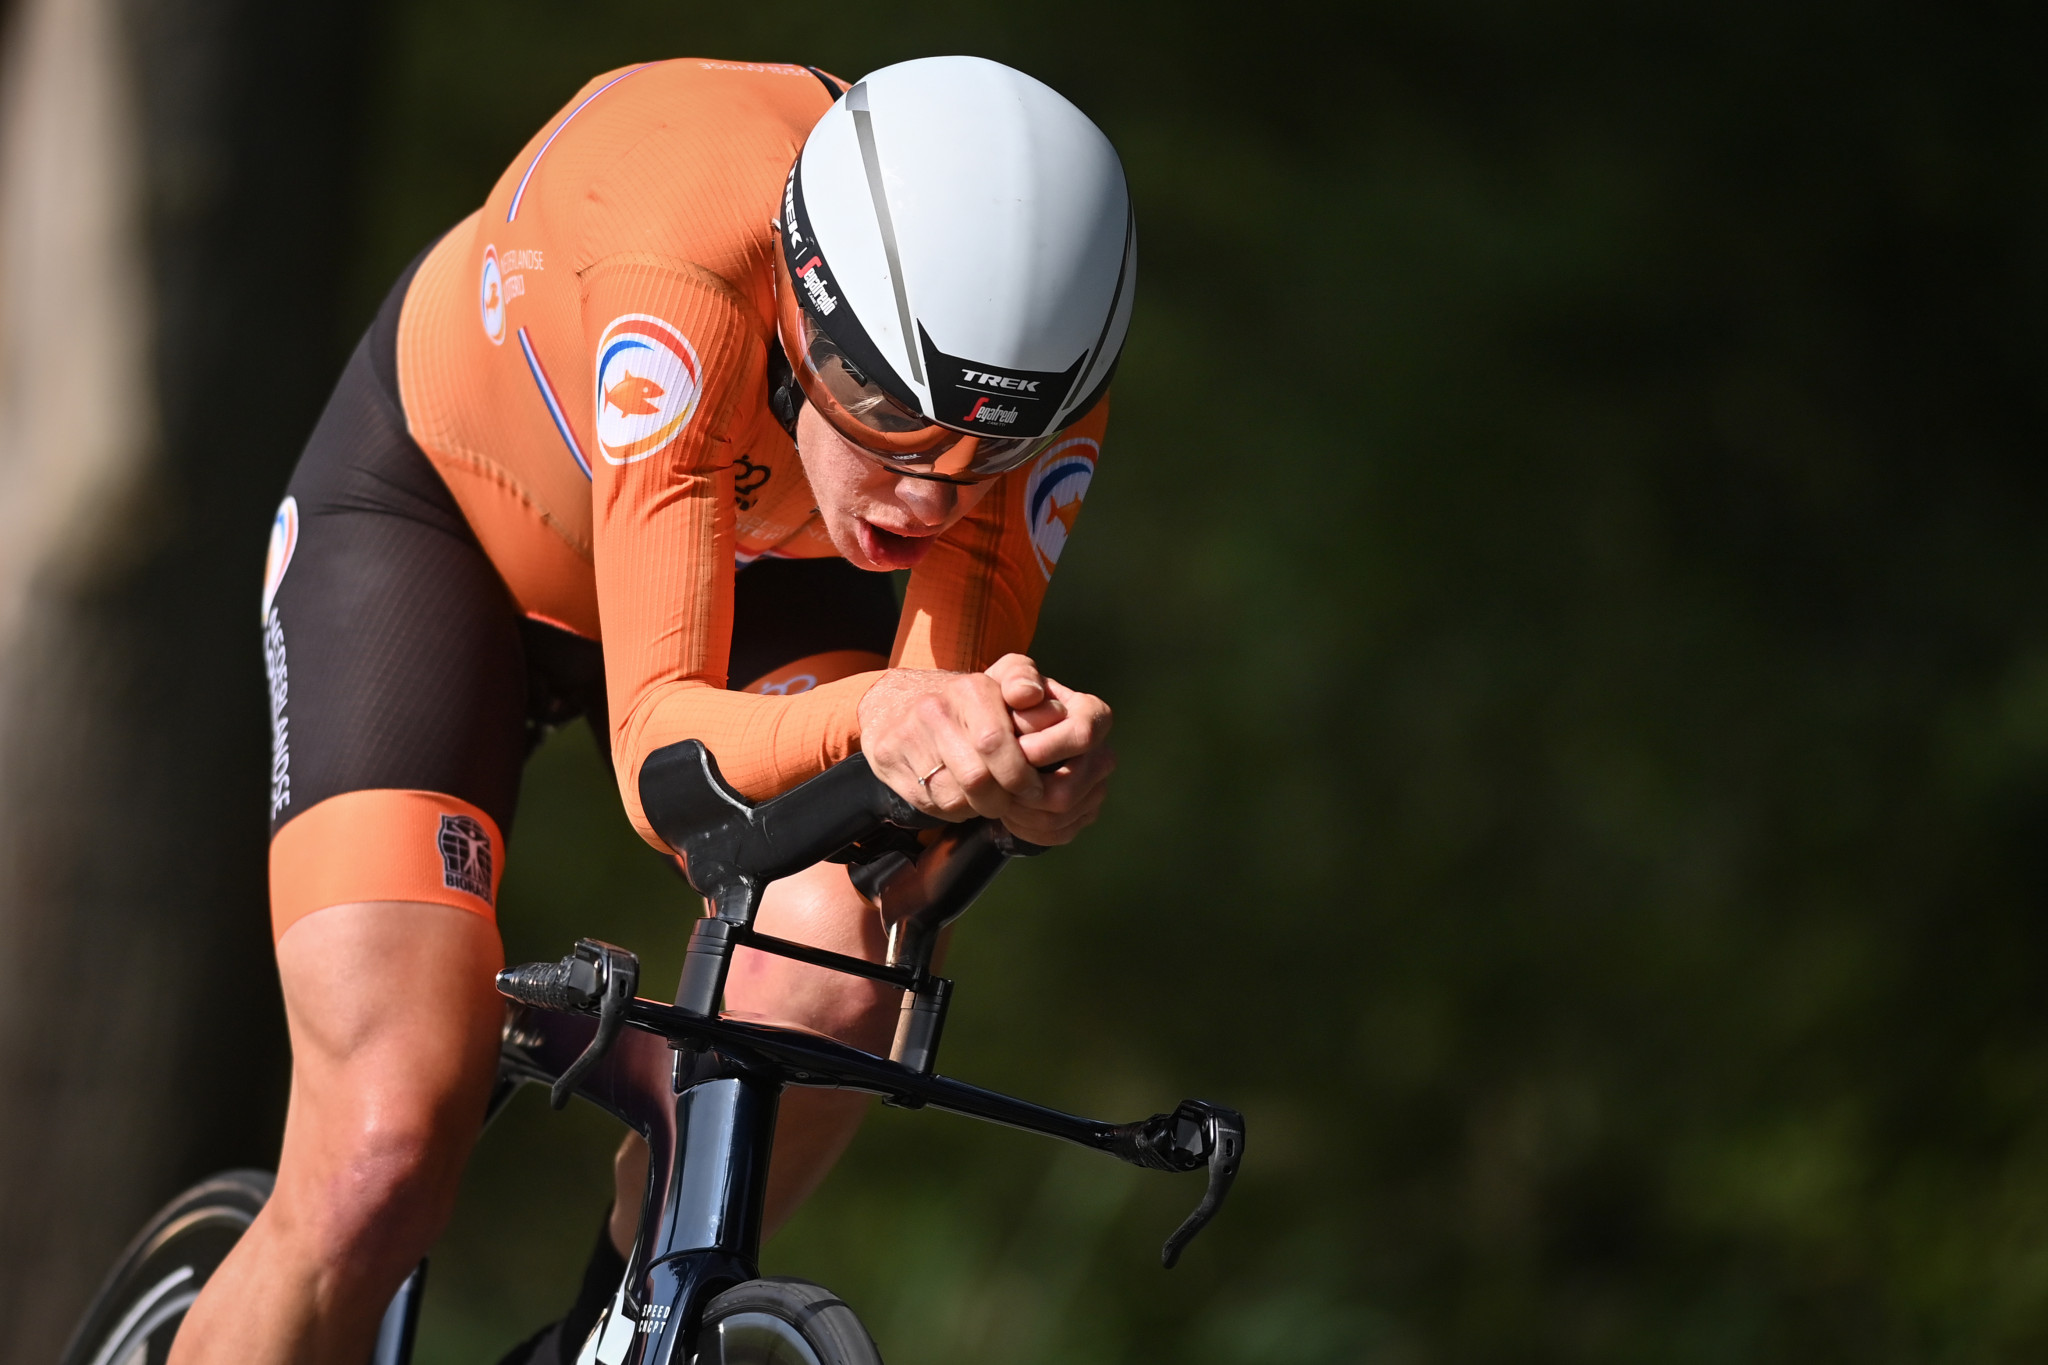 Van Dijk earns second time trial title at UCI Road World Championships in Flanders